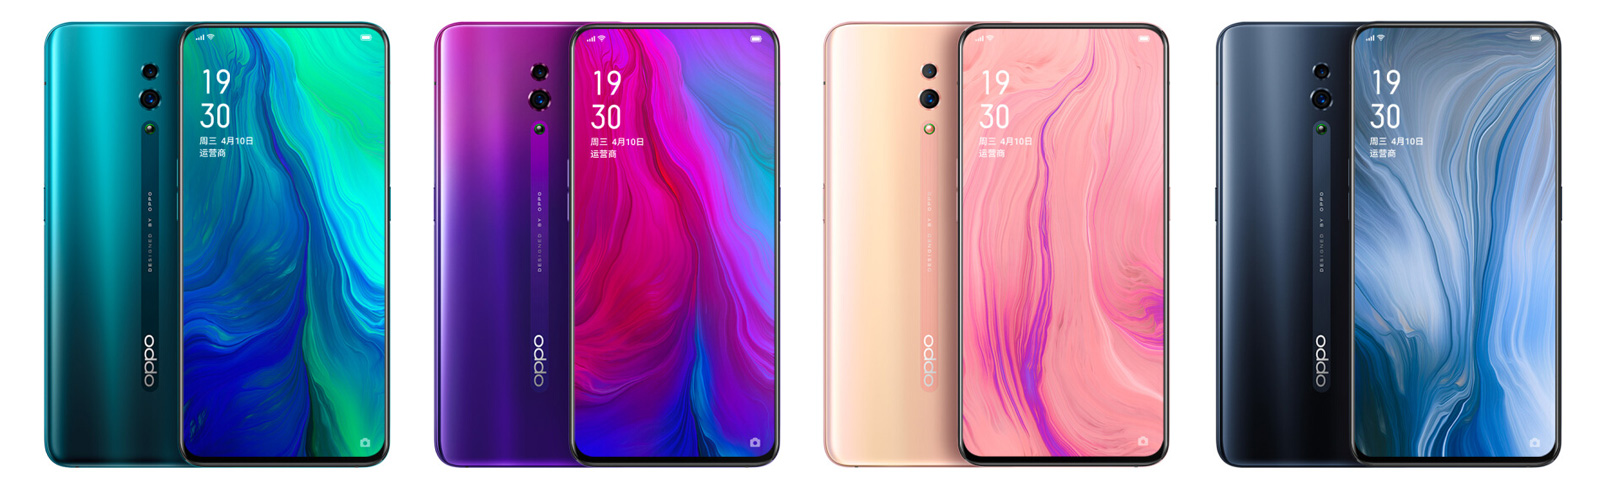 Oppo Reno official renders are published, reservations are open